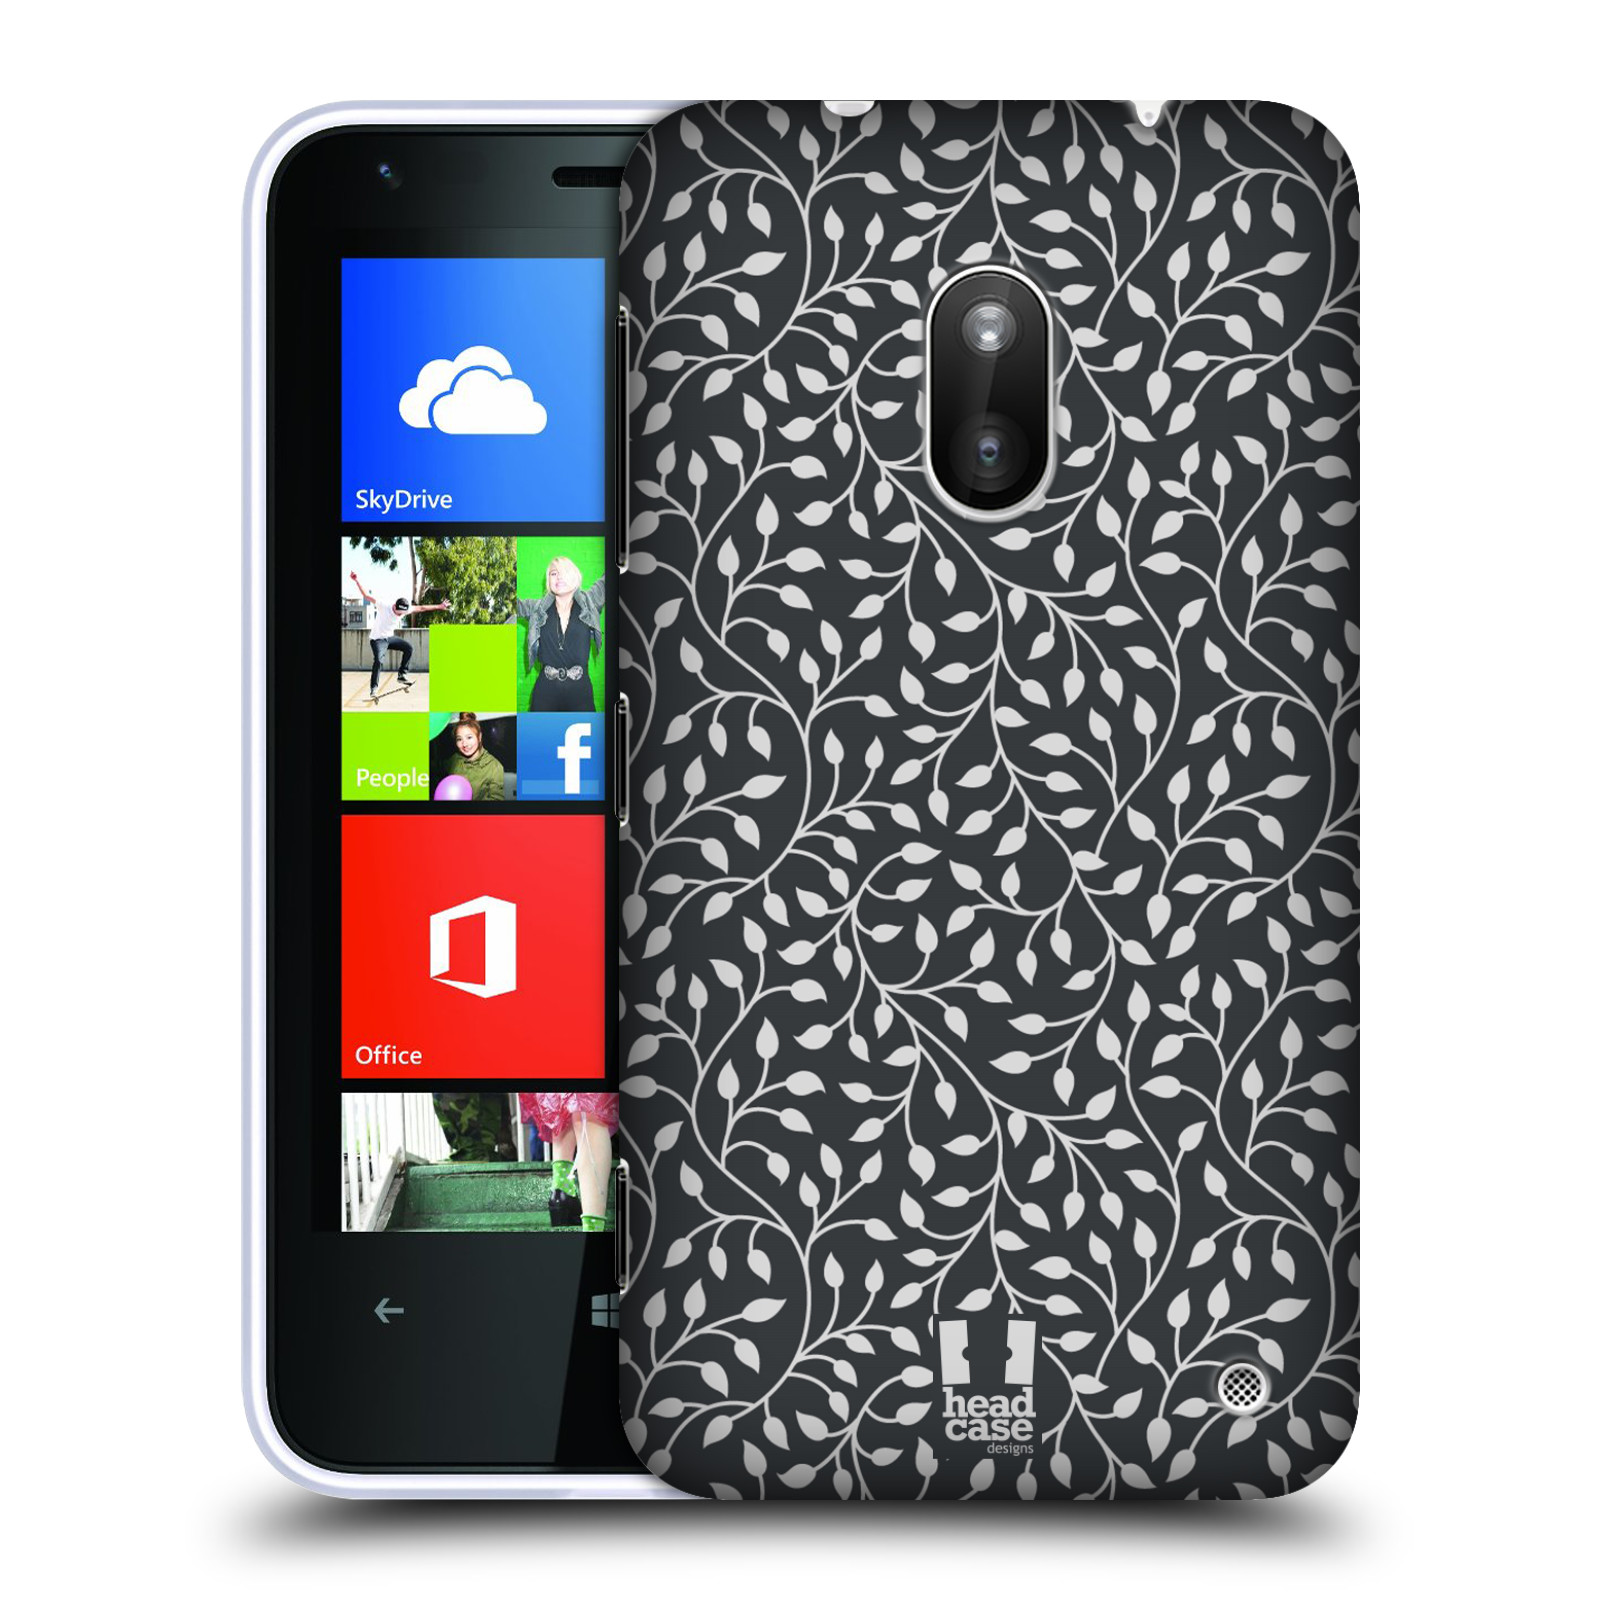 HEAD CASE DESIGNS LEAF PATTERNS 2 CASE COVER FOR NOKIA LUMIA 620